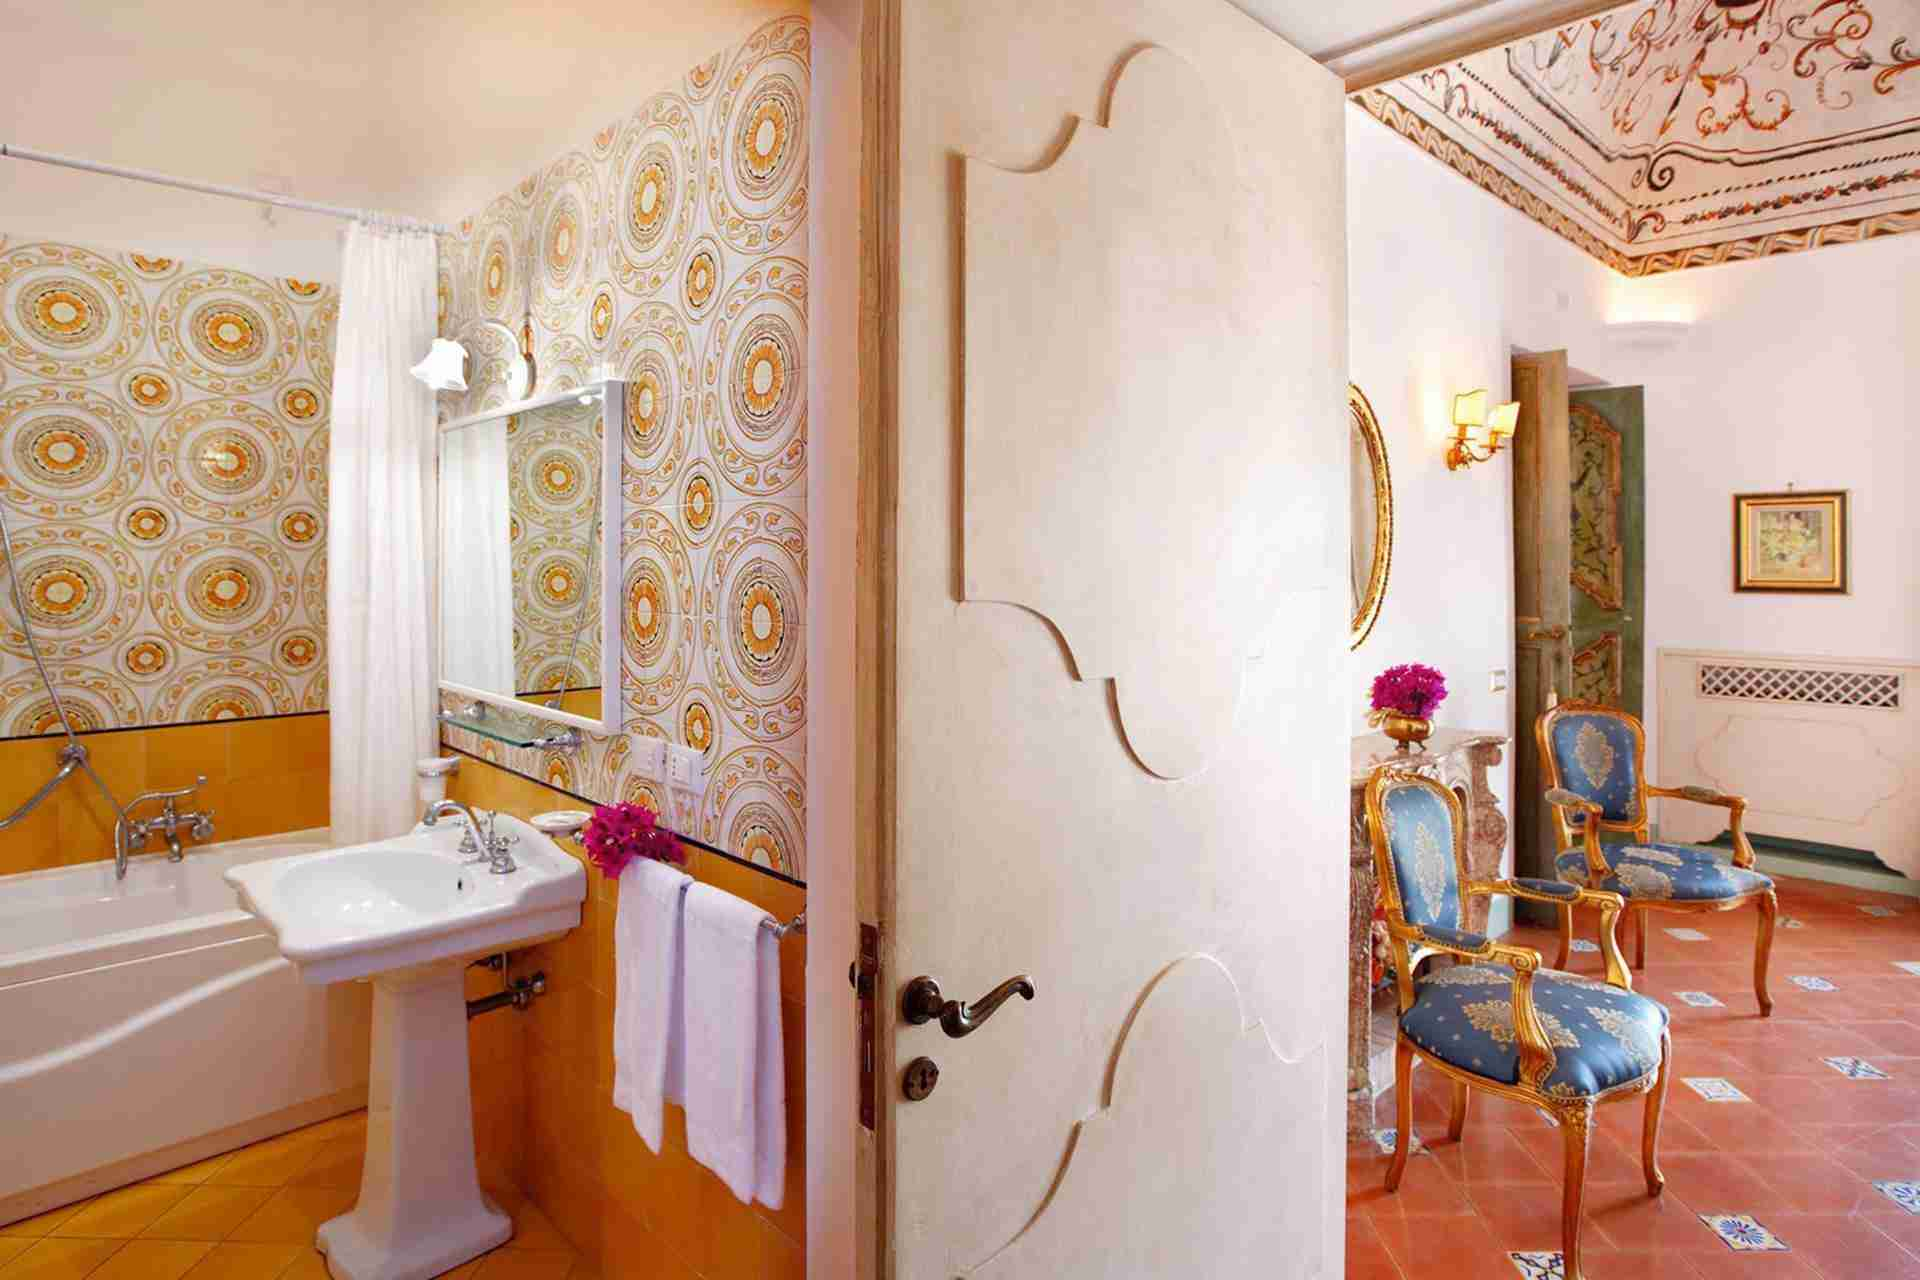 24 Positano bathroom